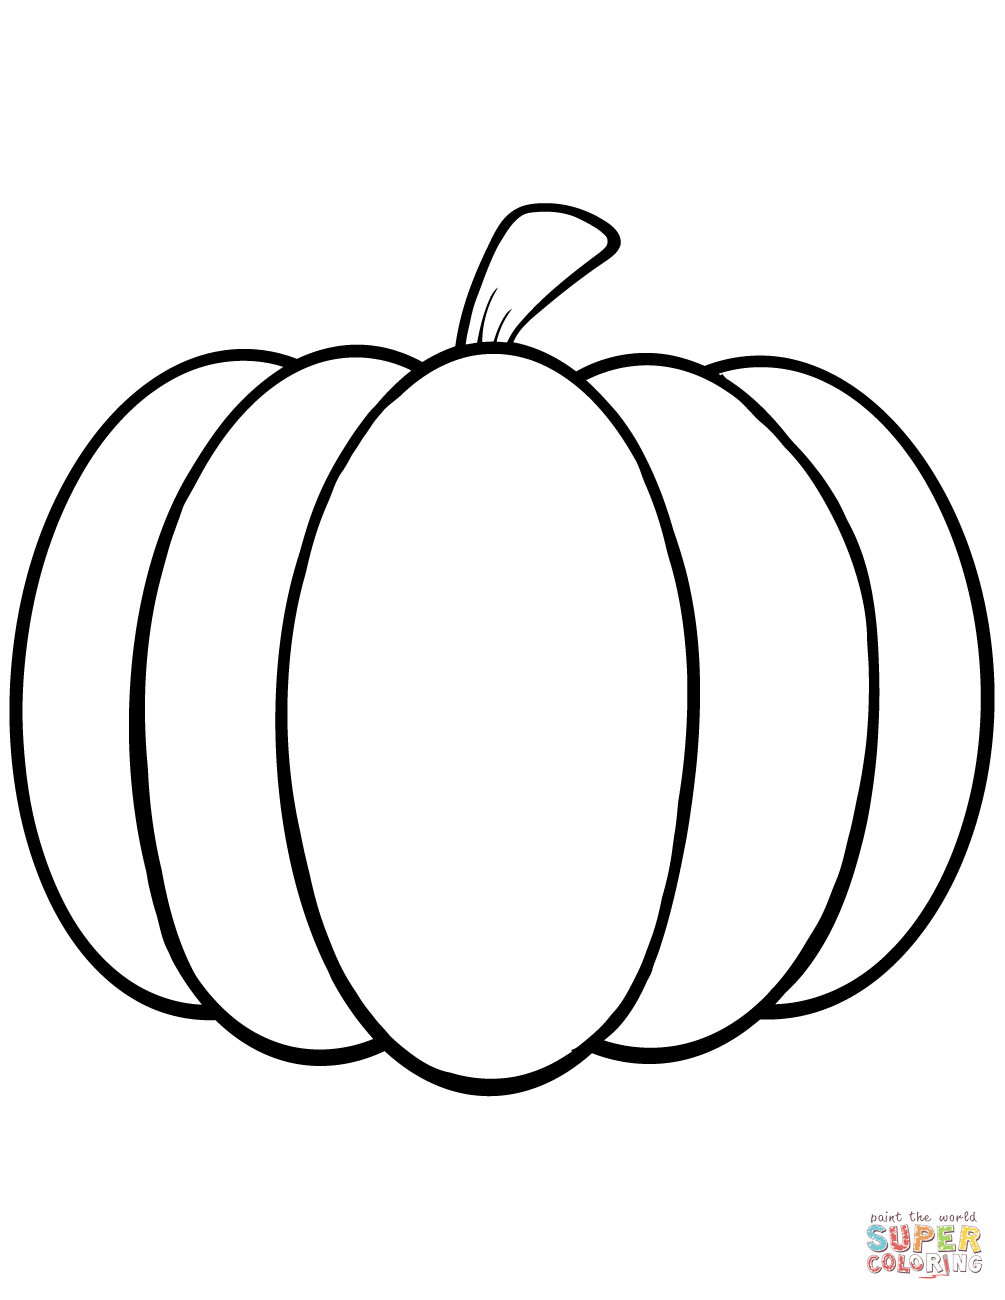 Image Result For Pumpkin Coloring Sheet Pumpkin Coloring Sheet Pumpkin Coloring Template Pumpkin Coloring Pages